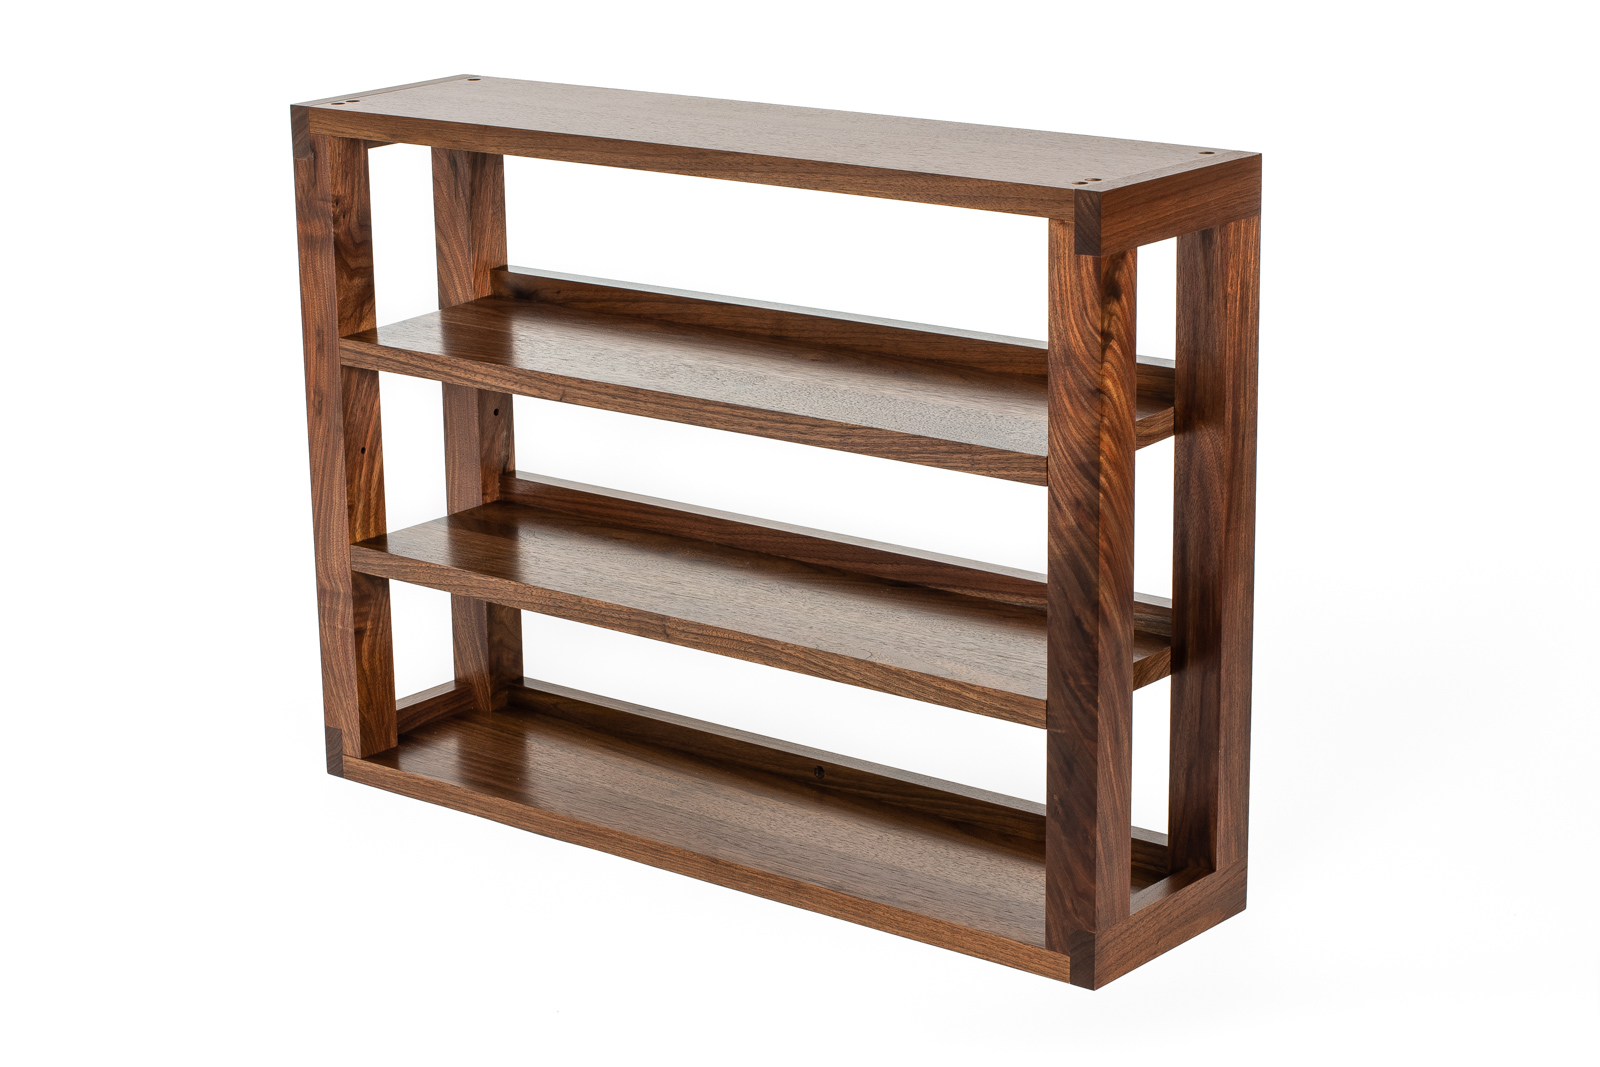 Walnut 3-Tier Media Shelves : NEW! Storage for CDs, cassettes & 8 tracks